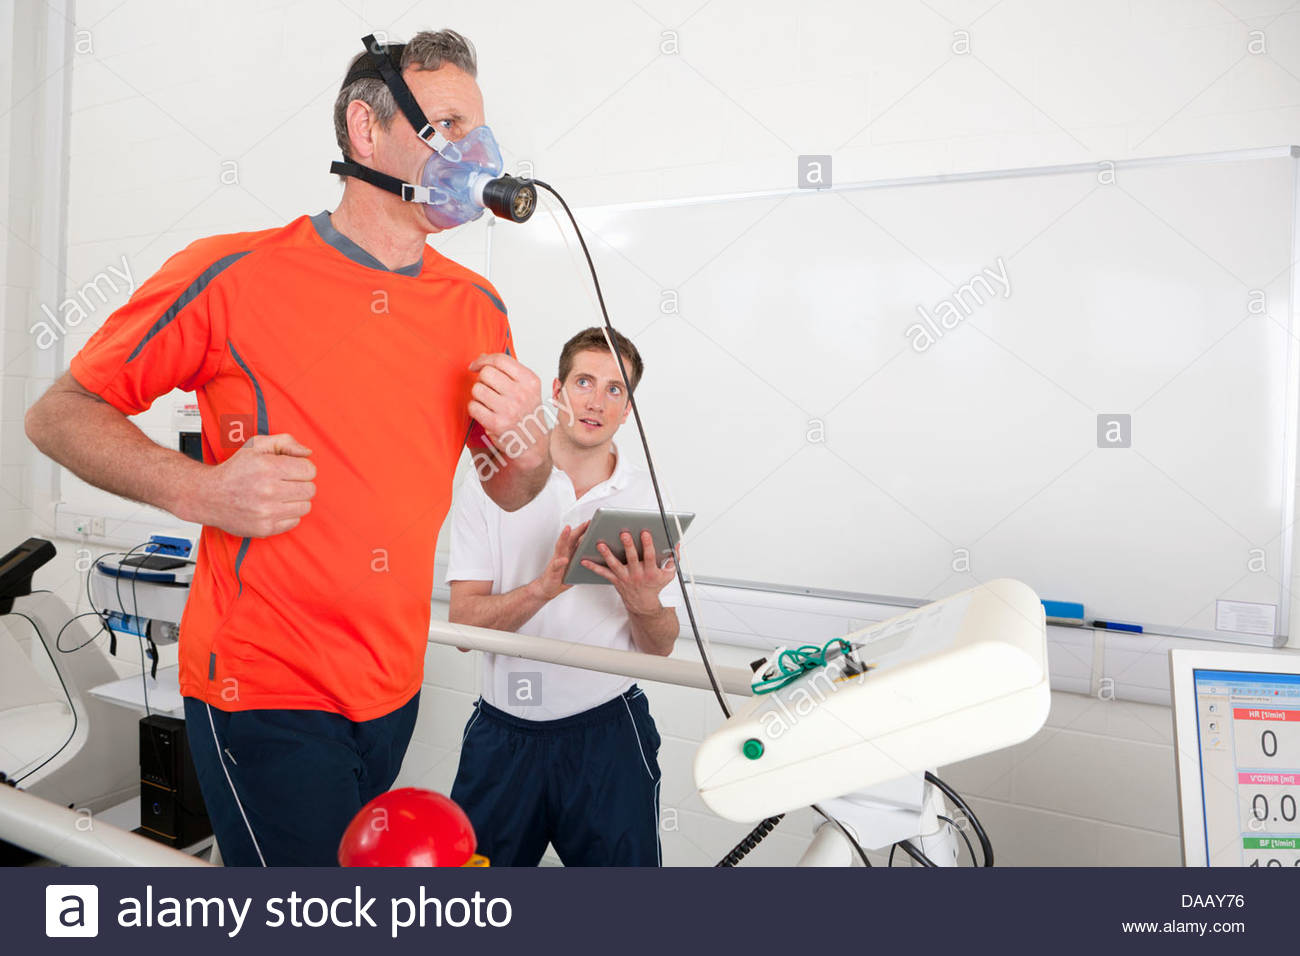 Sports scientist with digital tablet monitoring runner avec masque sur tapis roulant en laboratoire Photo Stock